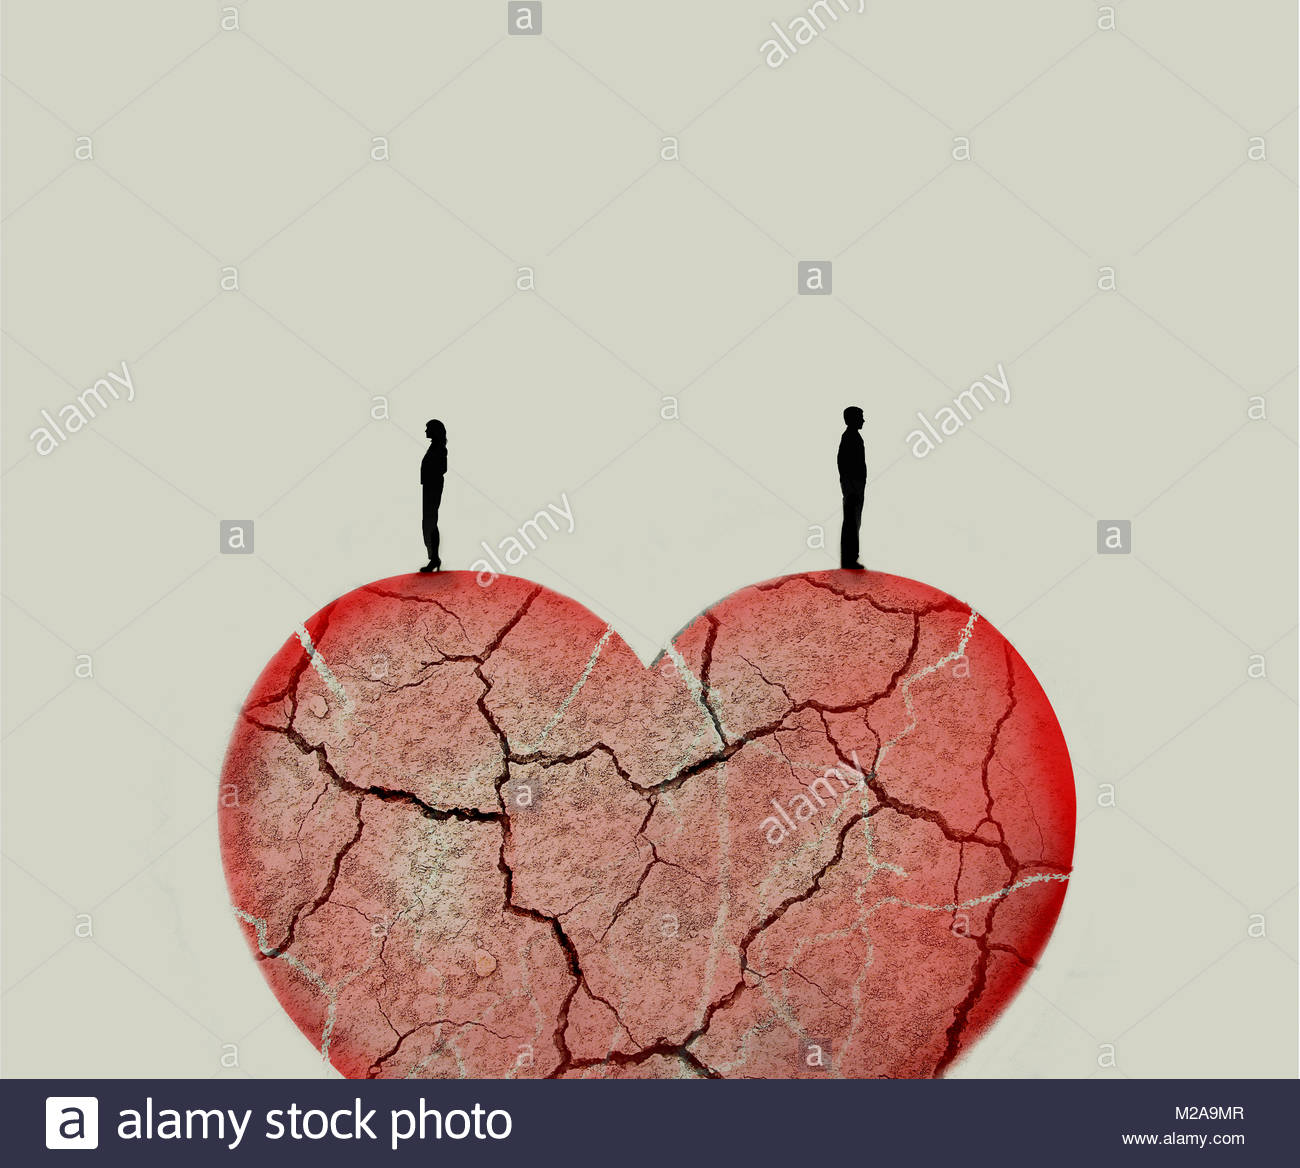 Couple standing on top of broken heart - Stock Image